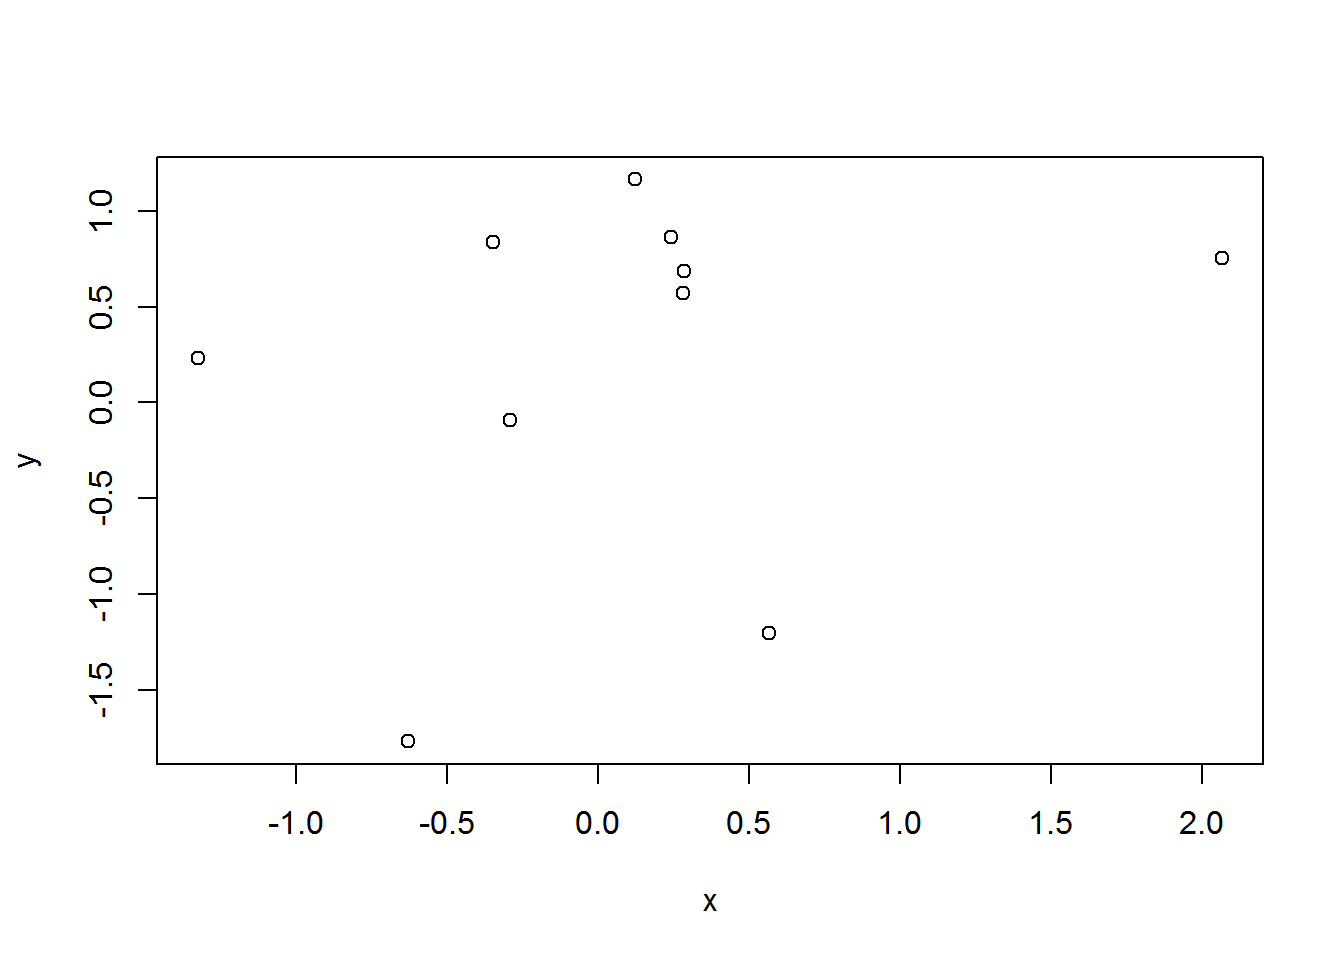 Getting started simulating data in R: some helpful functions